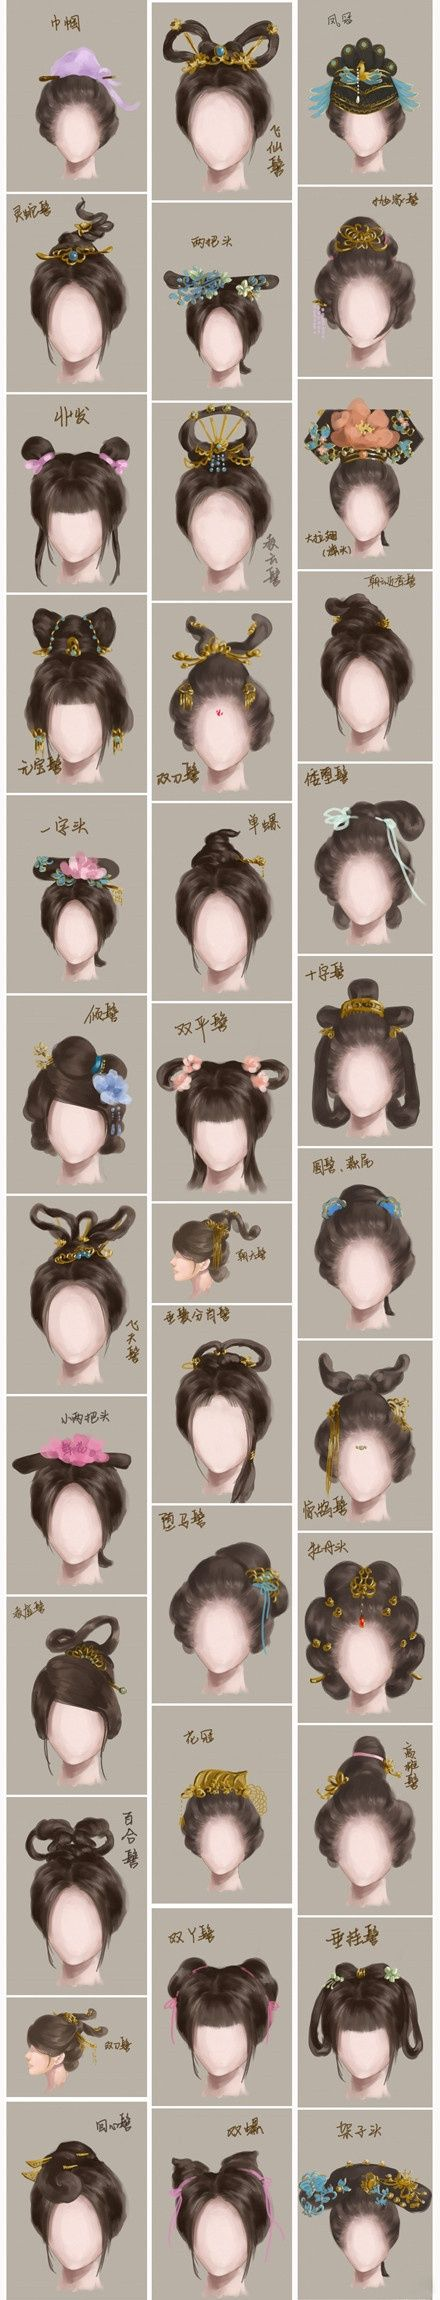 Some examples of Chinese hairstyles from different dynasties.